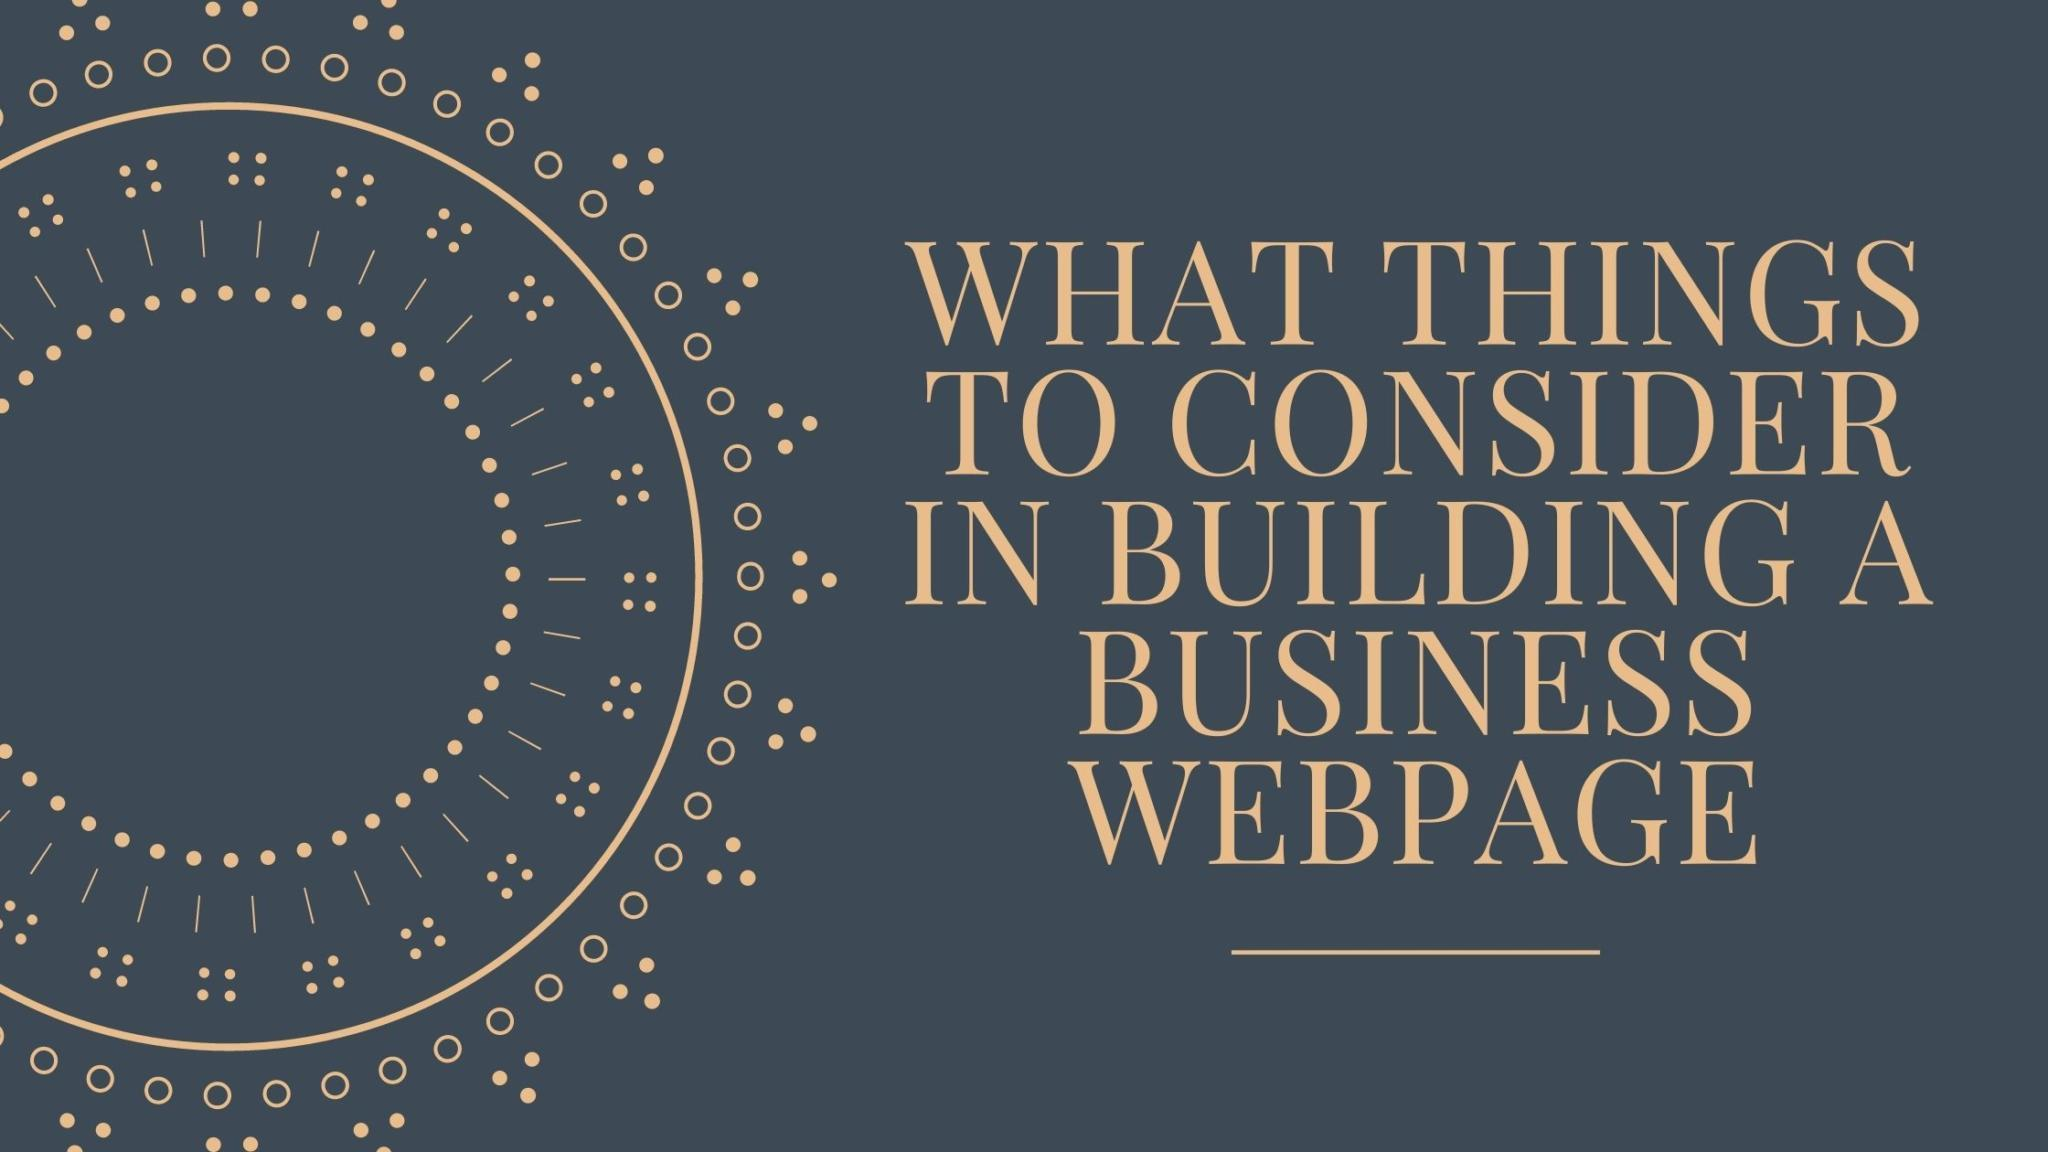 What Things to Consider in Building a Business Webpage